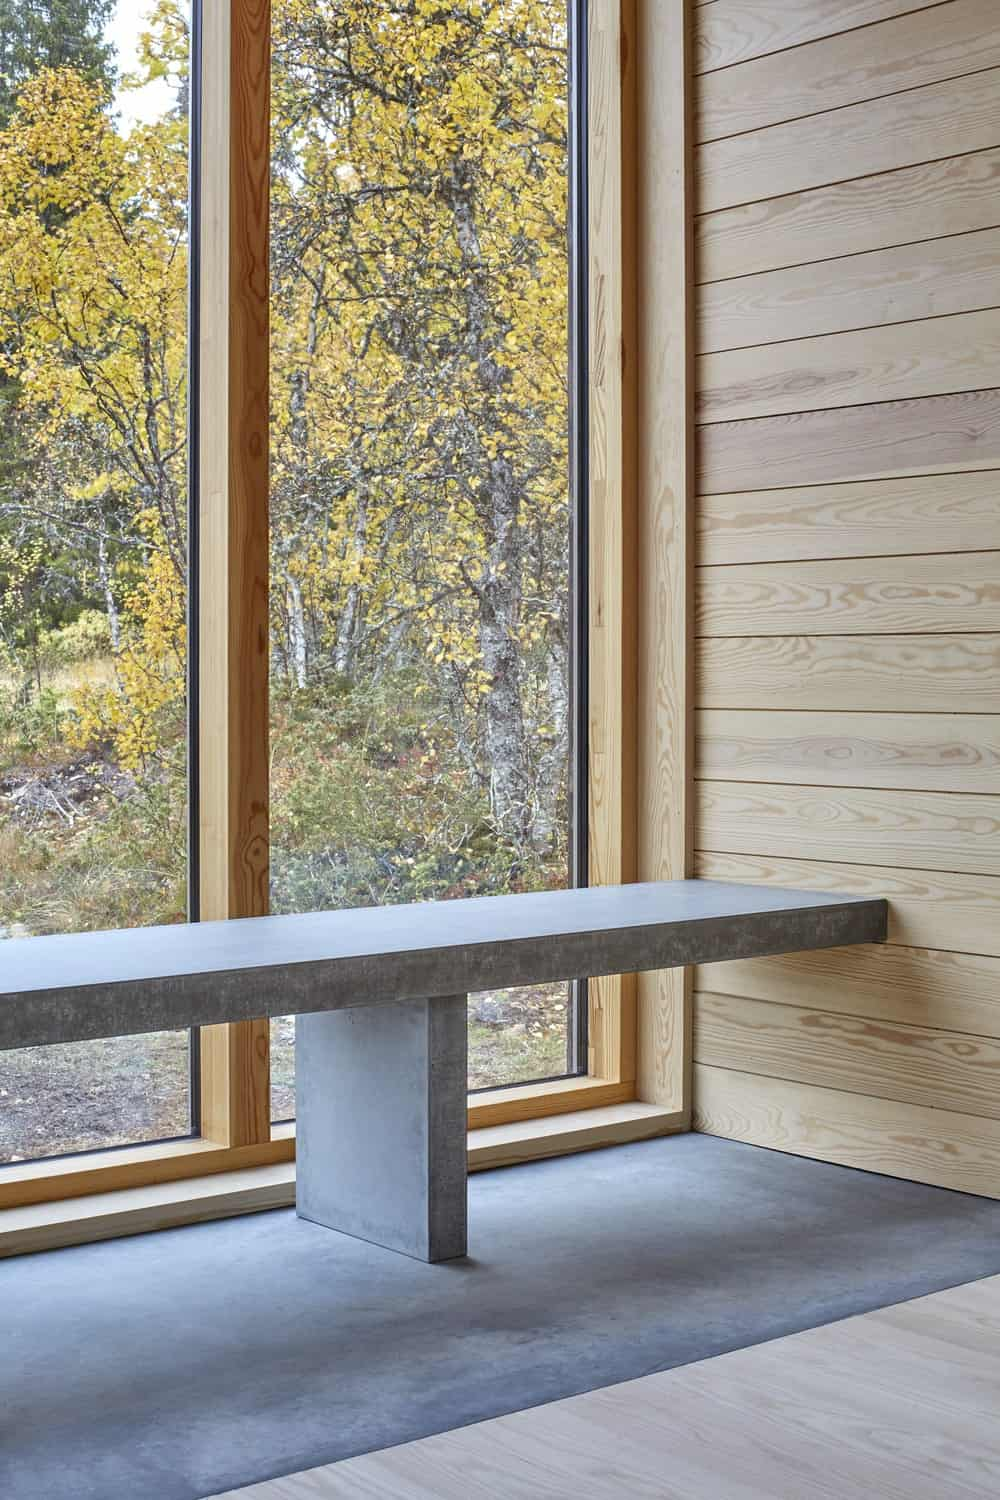 This corner of the house has a built-in stone bench that pairs well with the flooring and gives a nice complement to the glass wall and wooden wall.